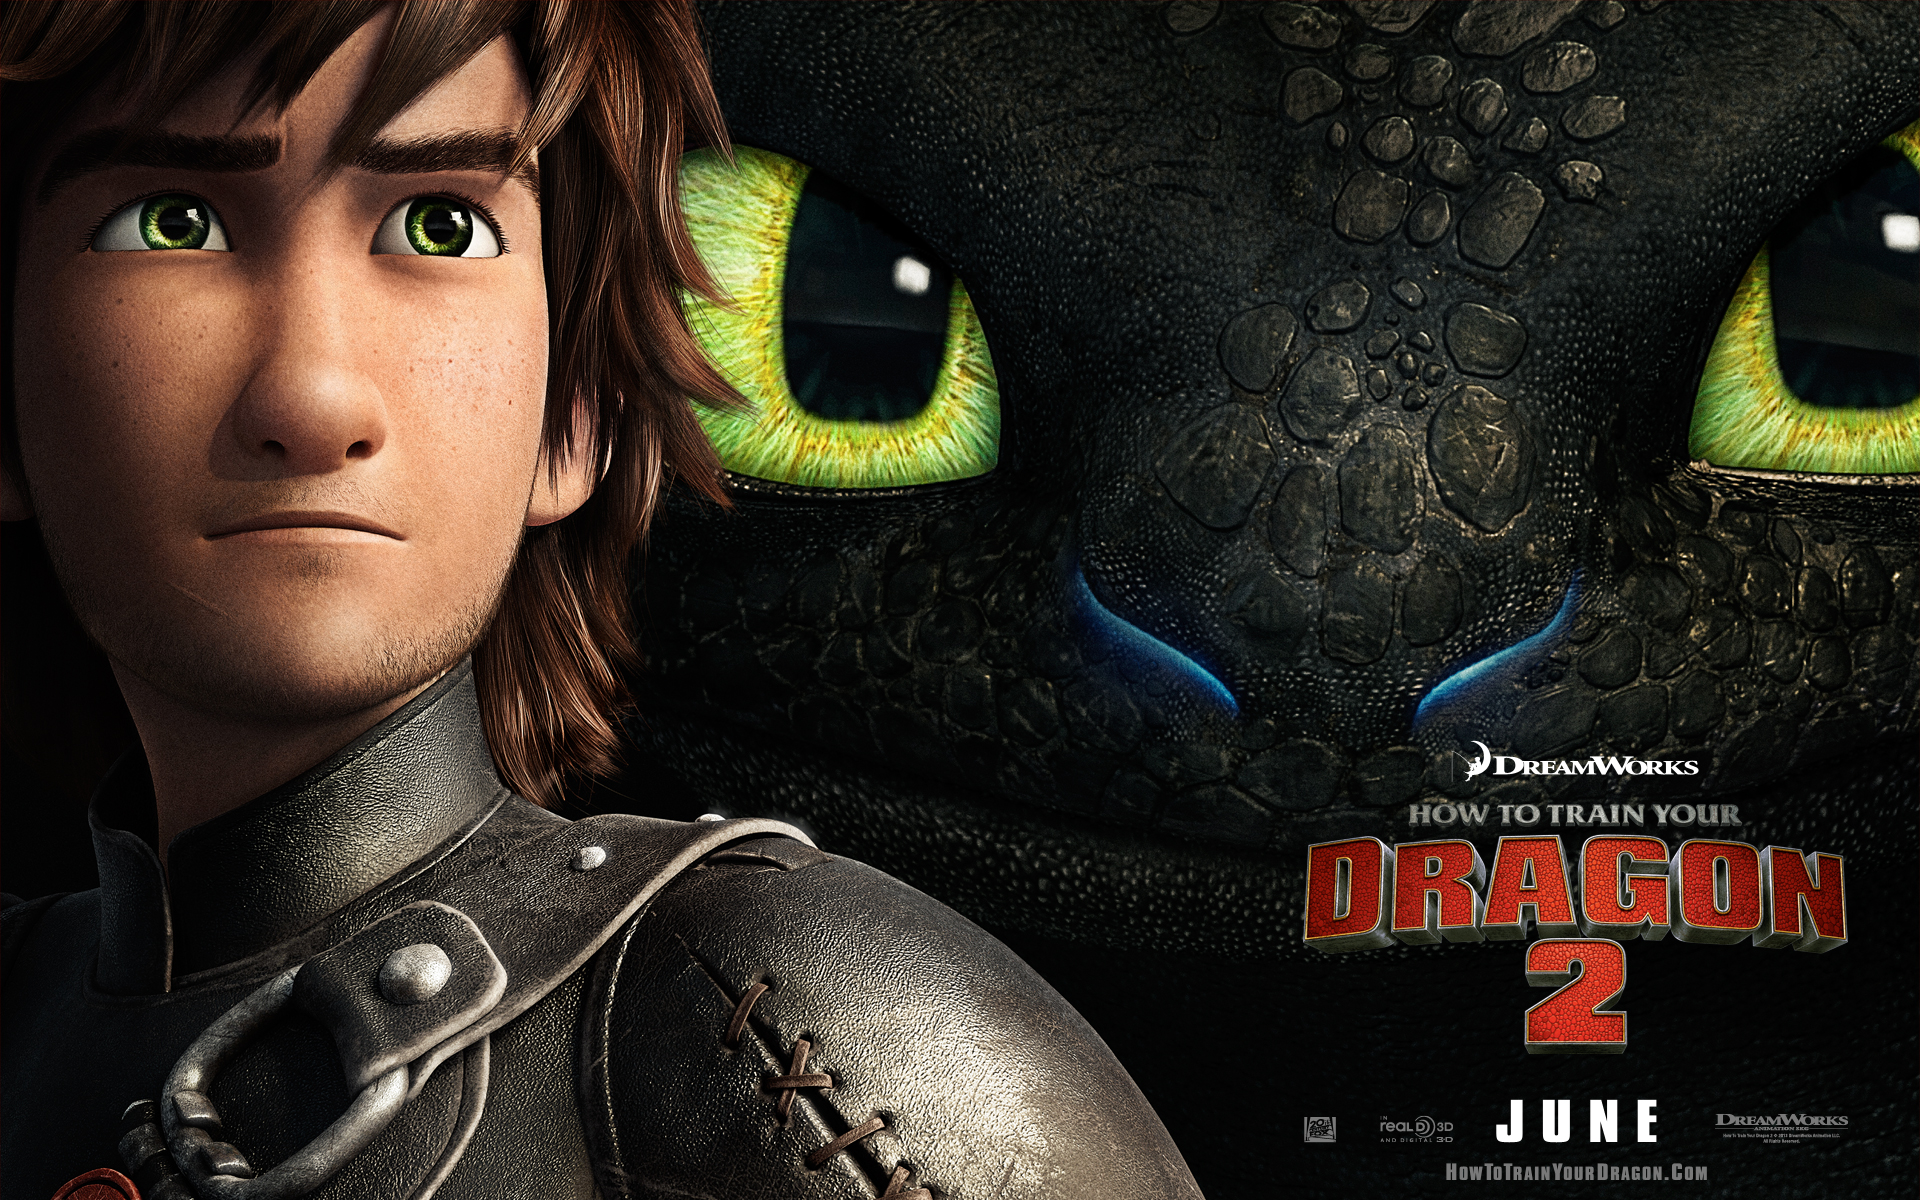 How to Train Your Dragon 2 wallpaper 1